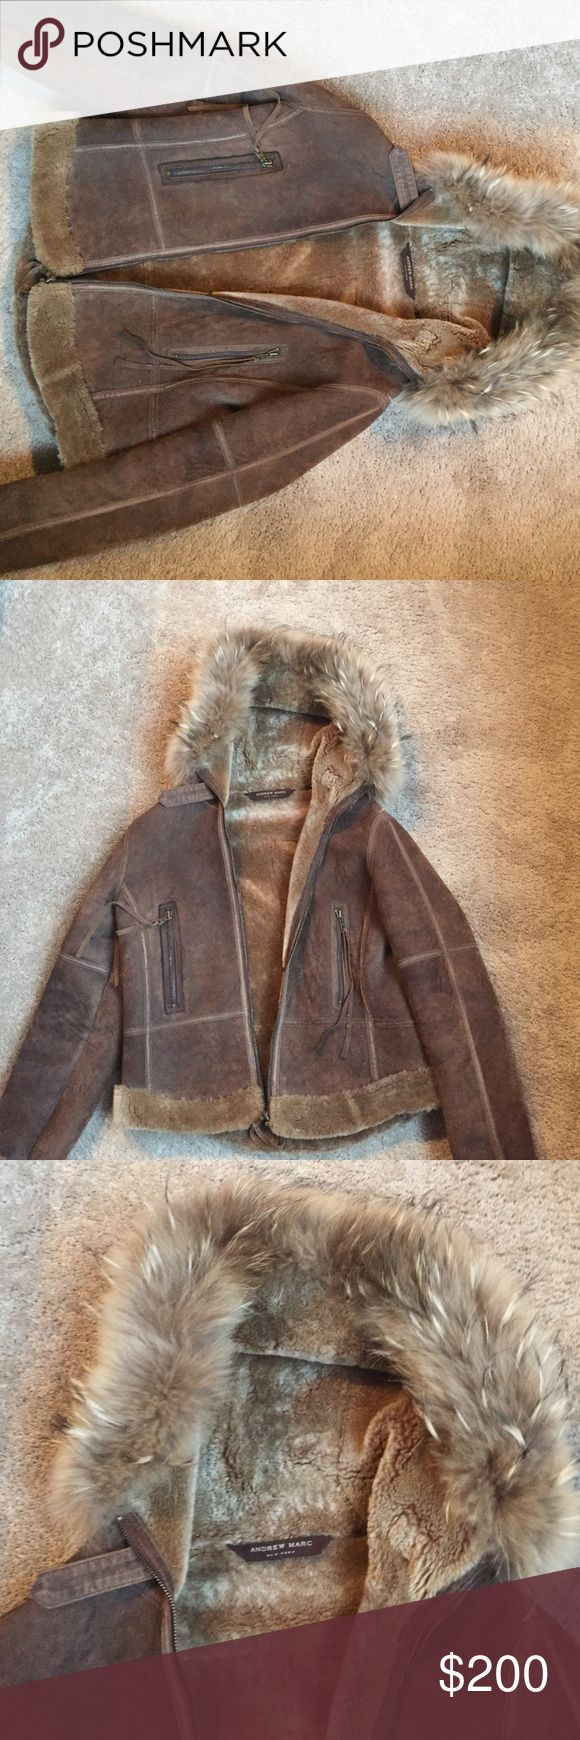 Andrew Marc fur jacket! Great quality so warm! New wore only a few times great Jacket! Size L but feels like M. Open for any offers!😊 Andrew Marc Jackets & Coats Puffers